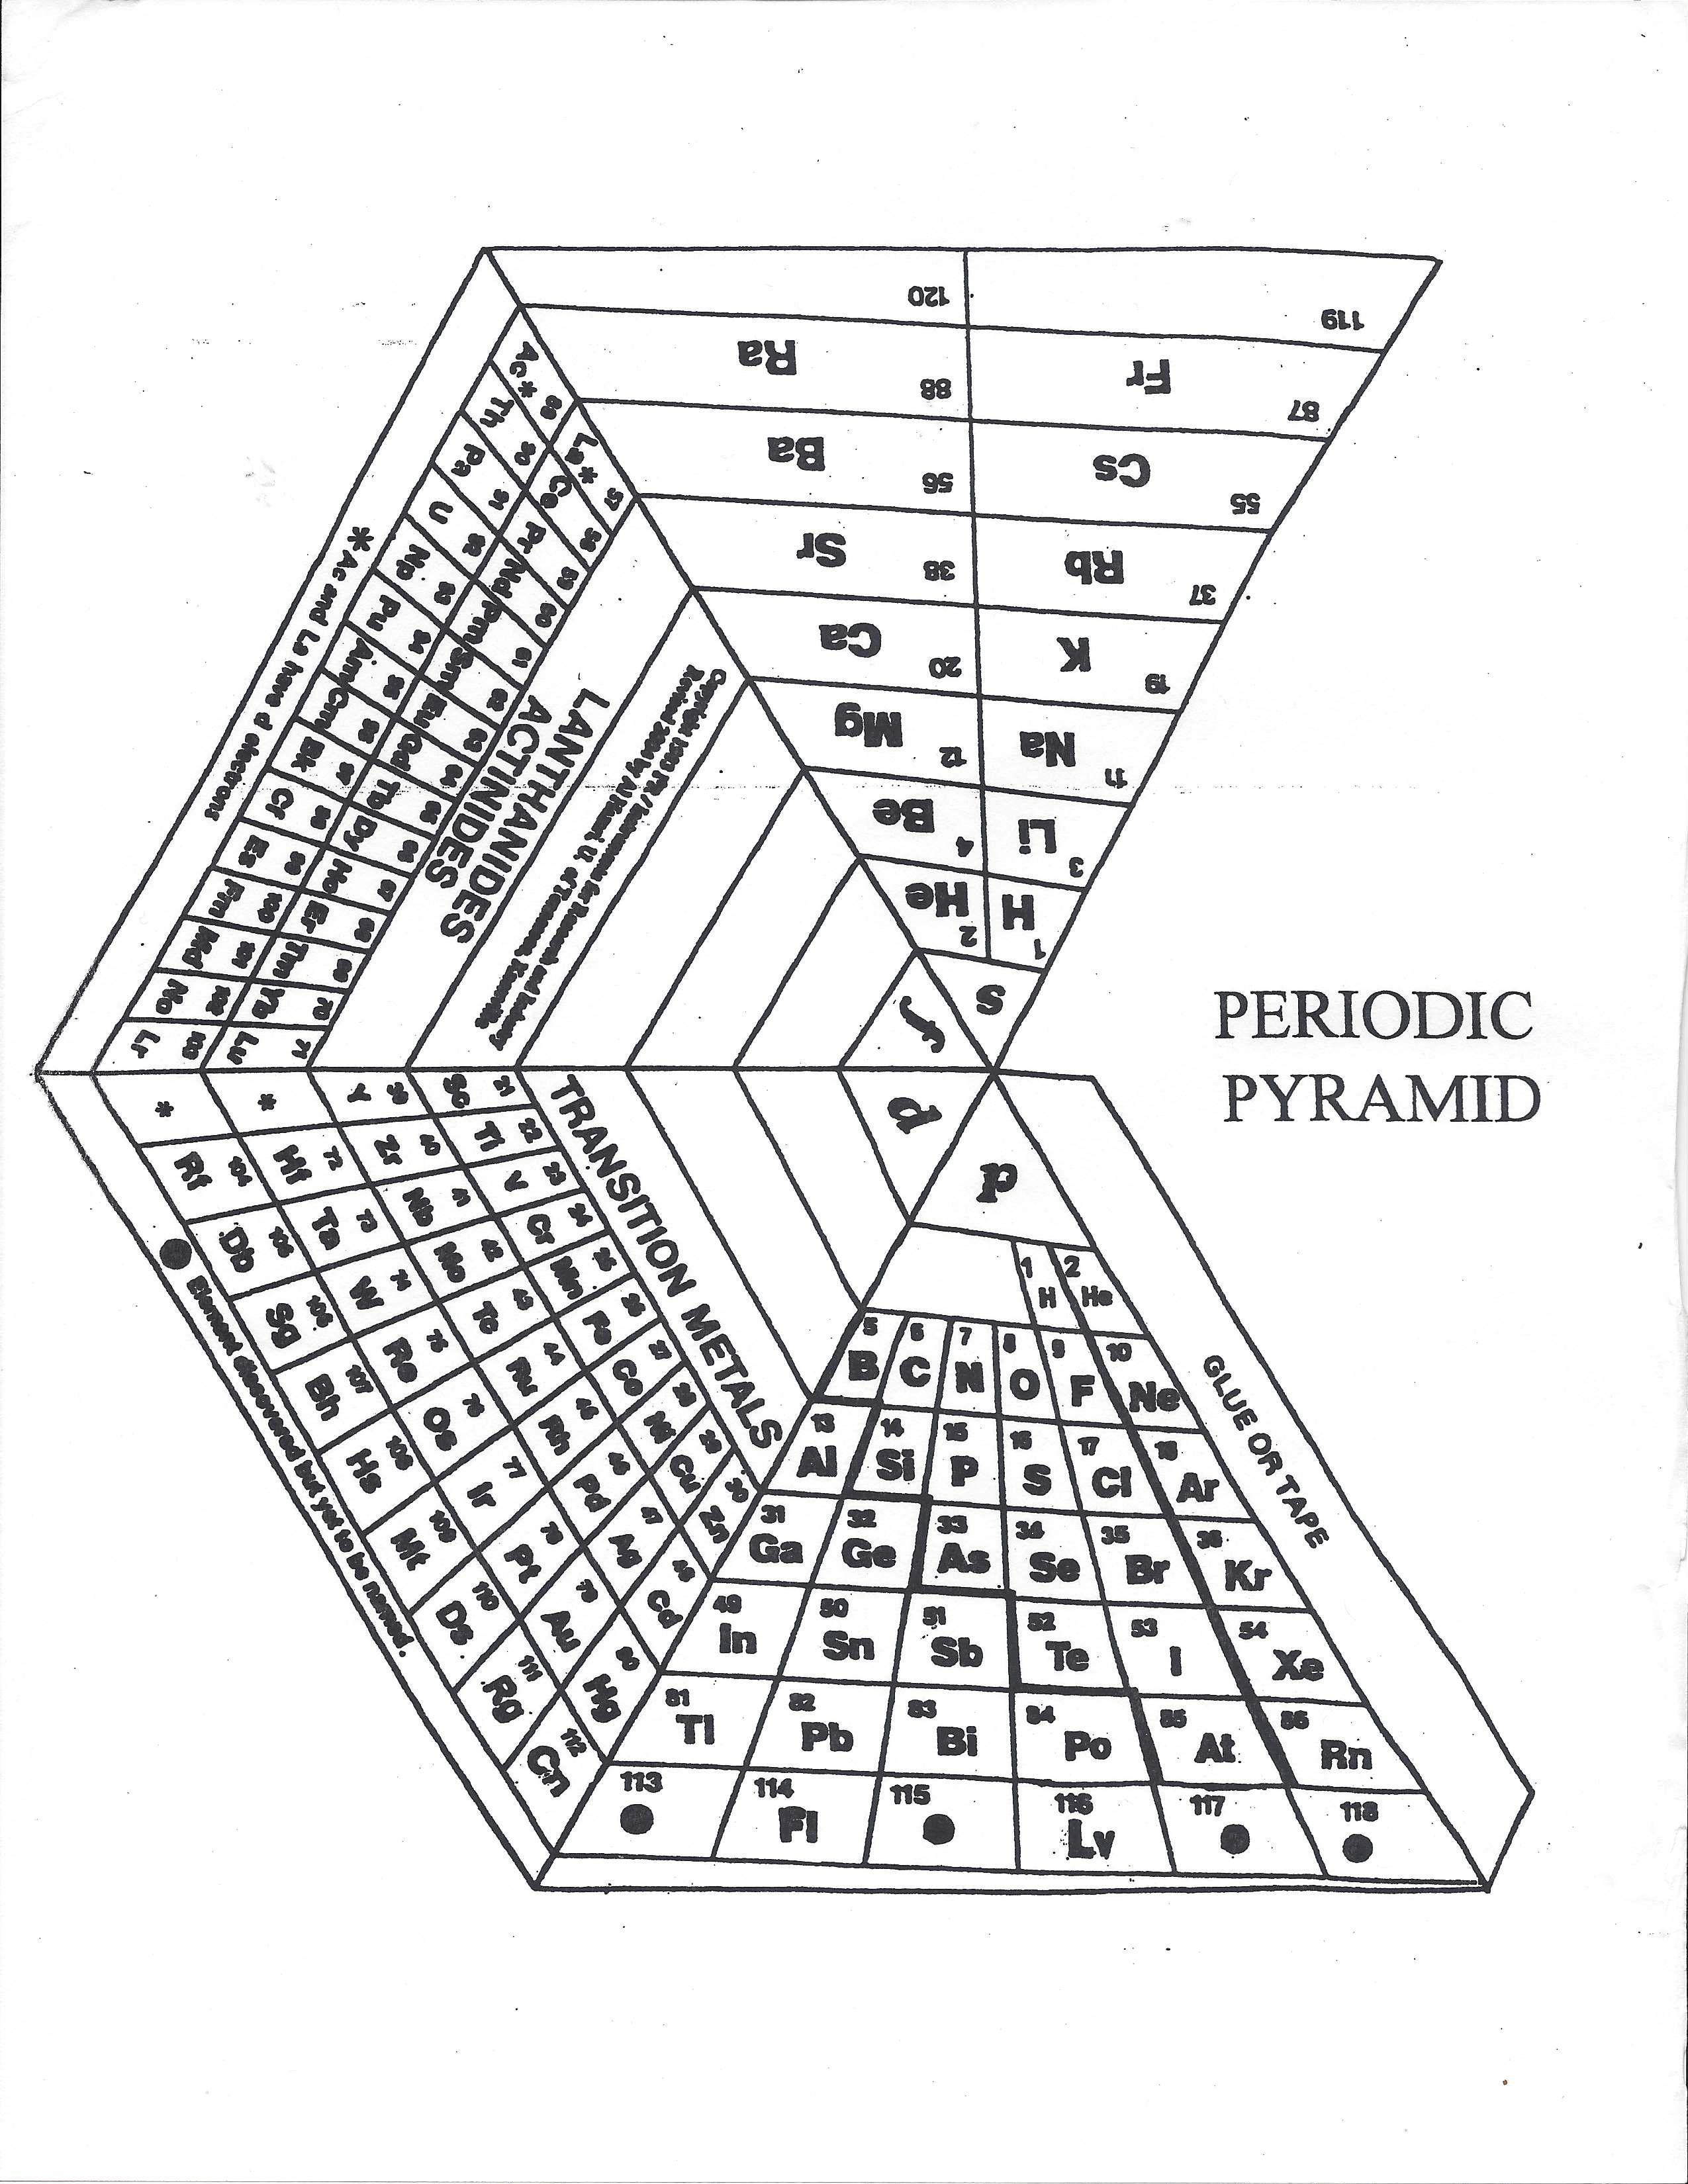 Foldable periodic pyramid table of elements you can even color it foldable periodic pyramid table of elements you can even color it urtaz Image collections